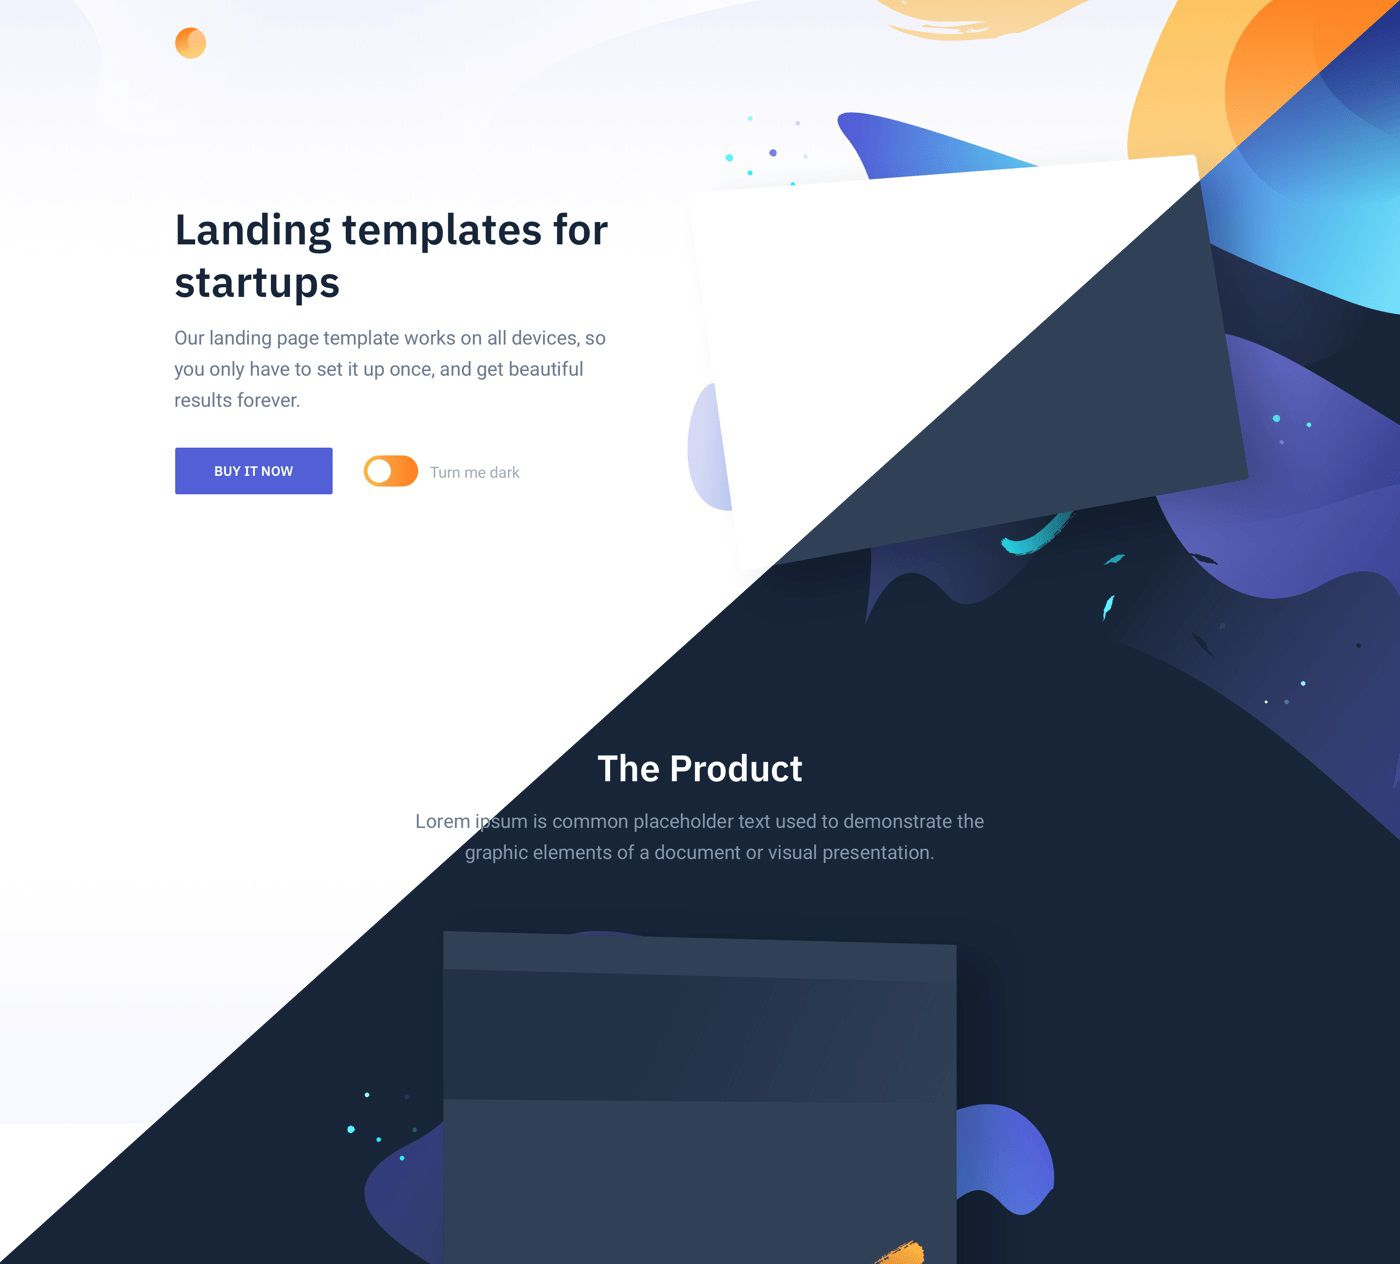 008 Impressive Responsive Landing Page Template Sample  Templates Marketo Free Pardot Html5 DownloadFull